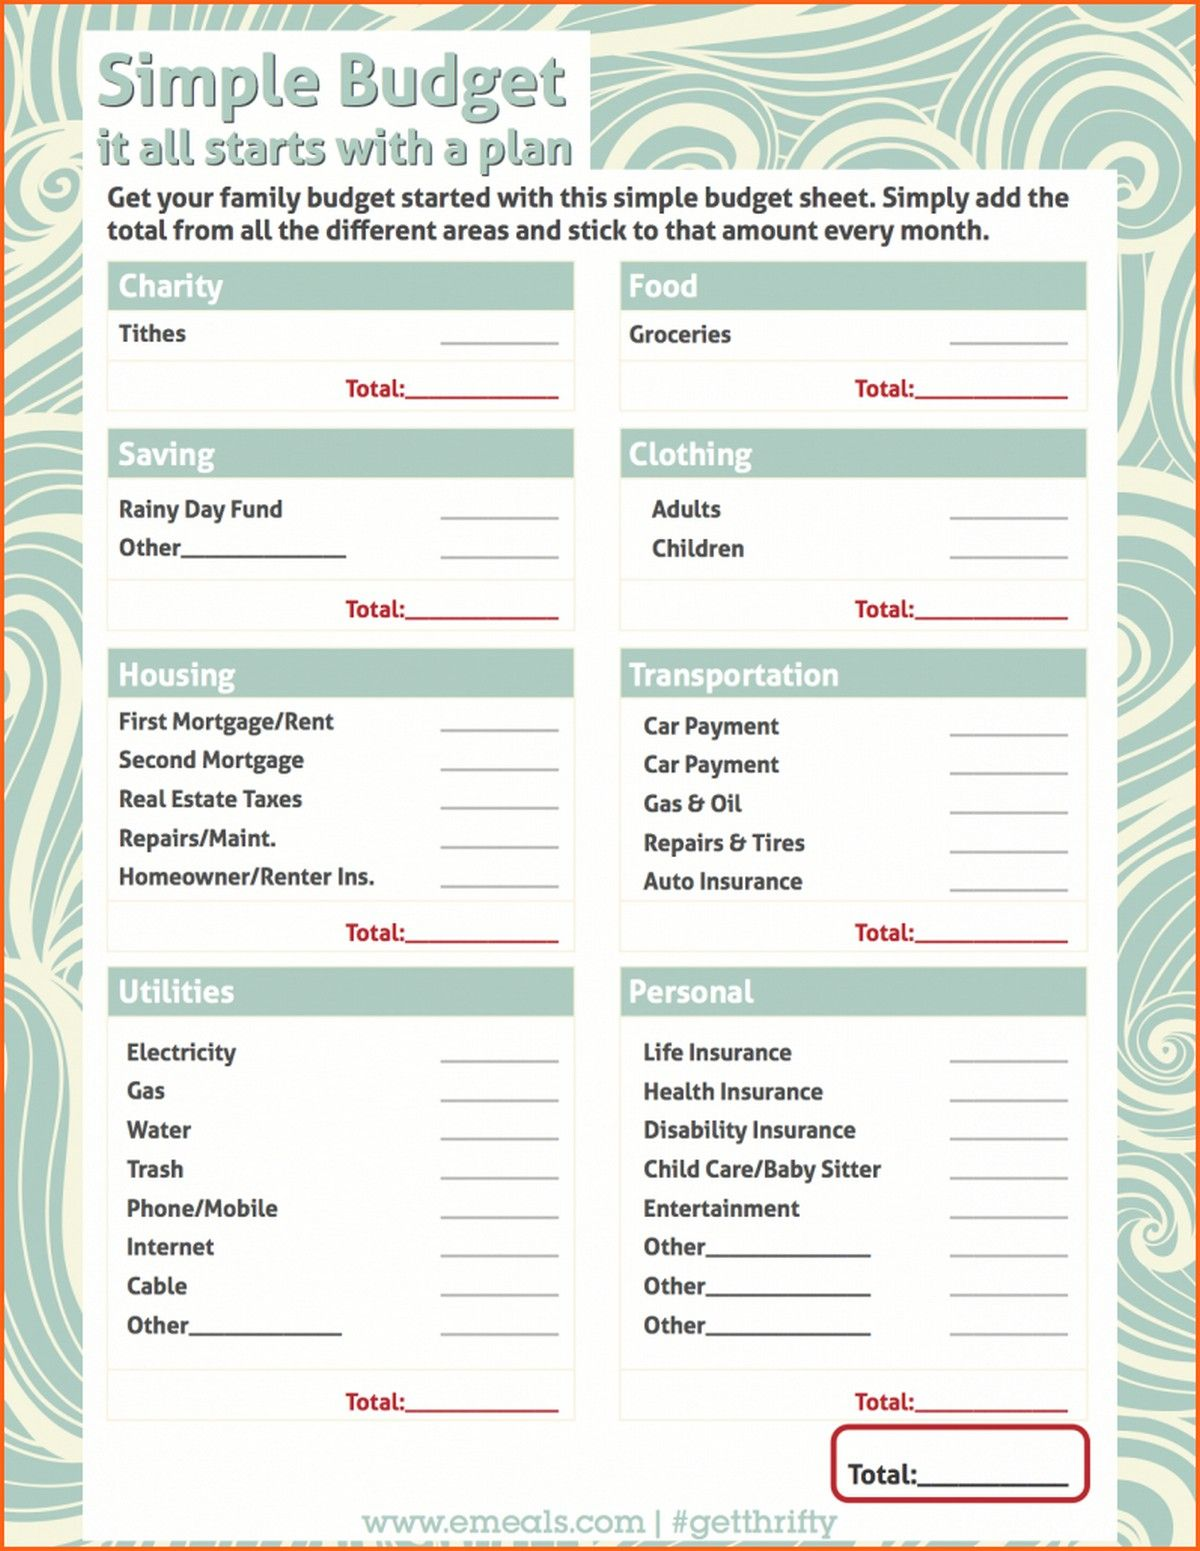 Dave Ramsey Budget Spreadsheet In 2021 Simple Budget Worksheet Simple Budget Budgeting Worksheets Free